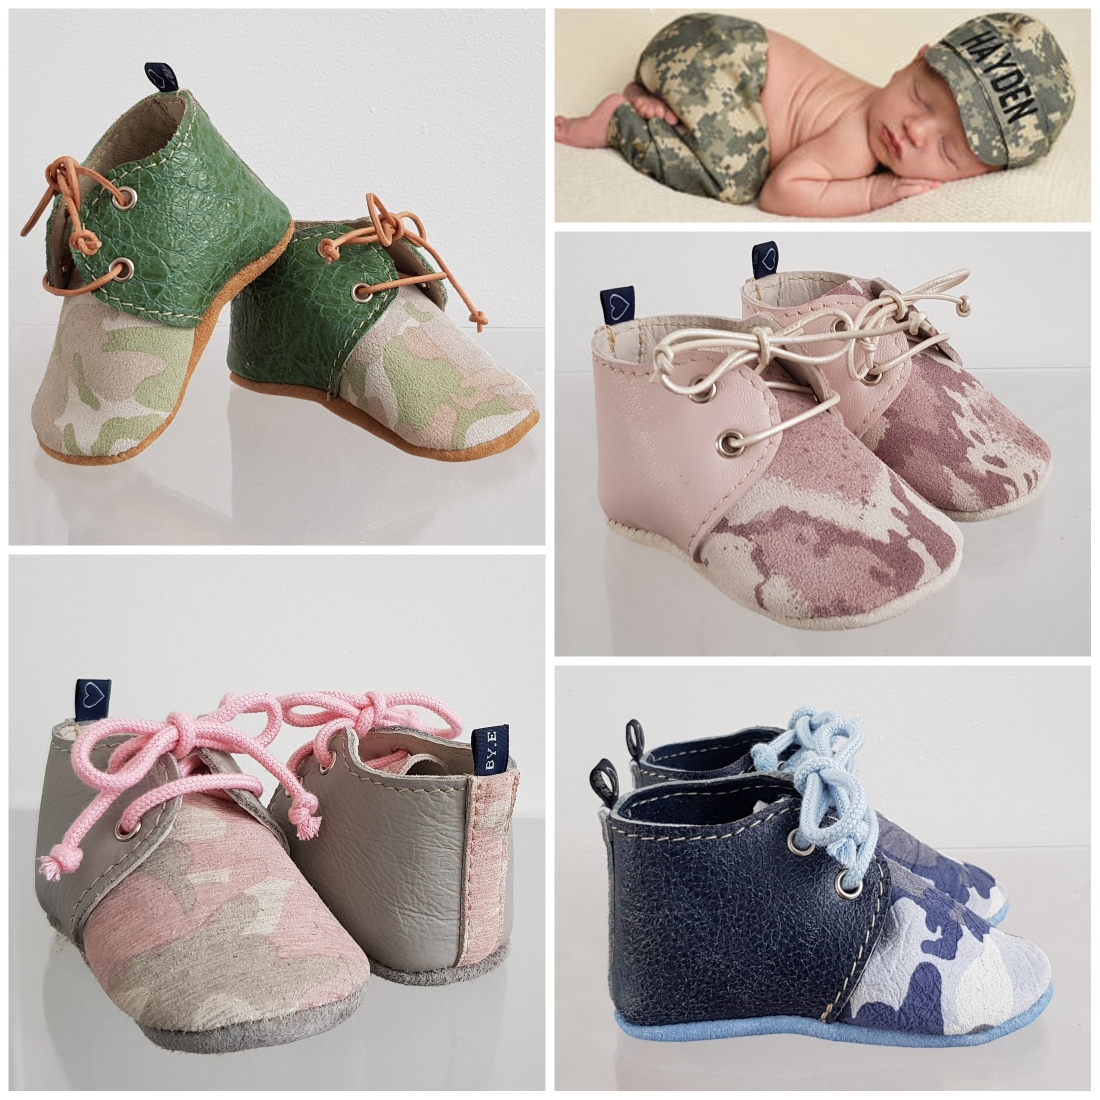 BY.E Little Shoes, let's start small!